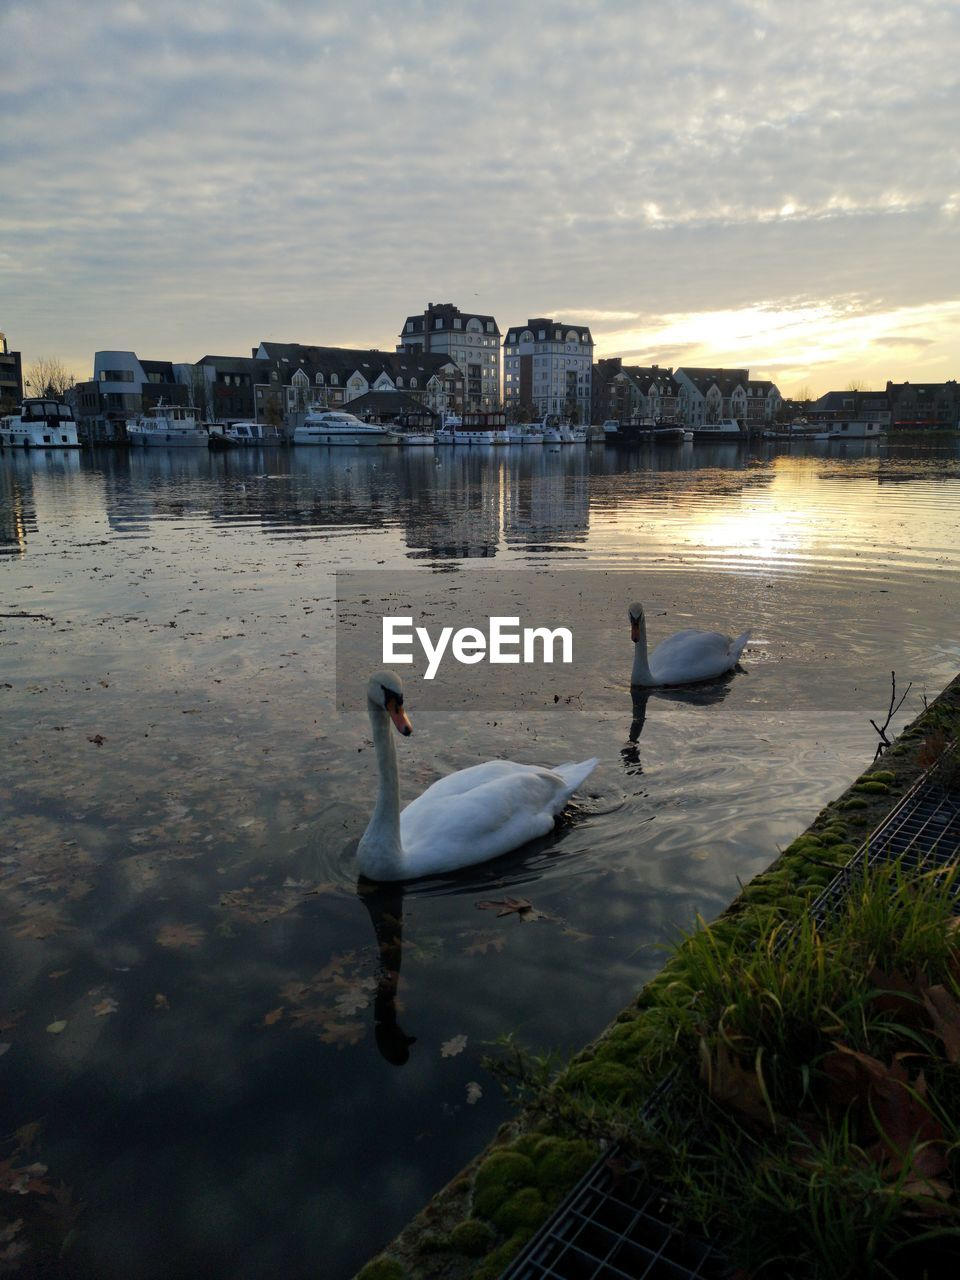 VIEW OF SWANS IN CALM LAKE